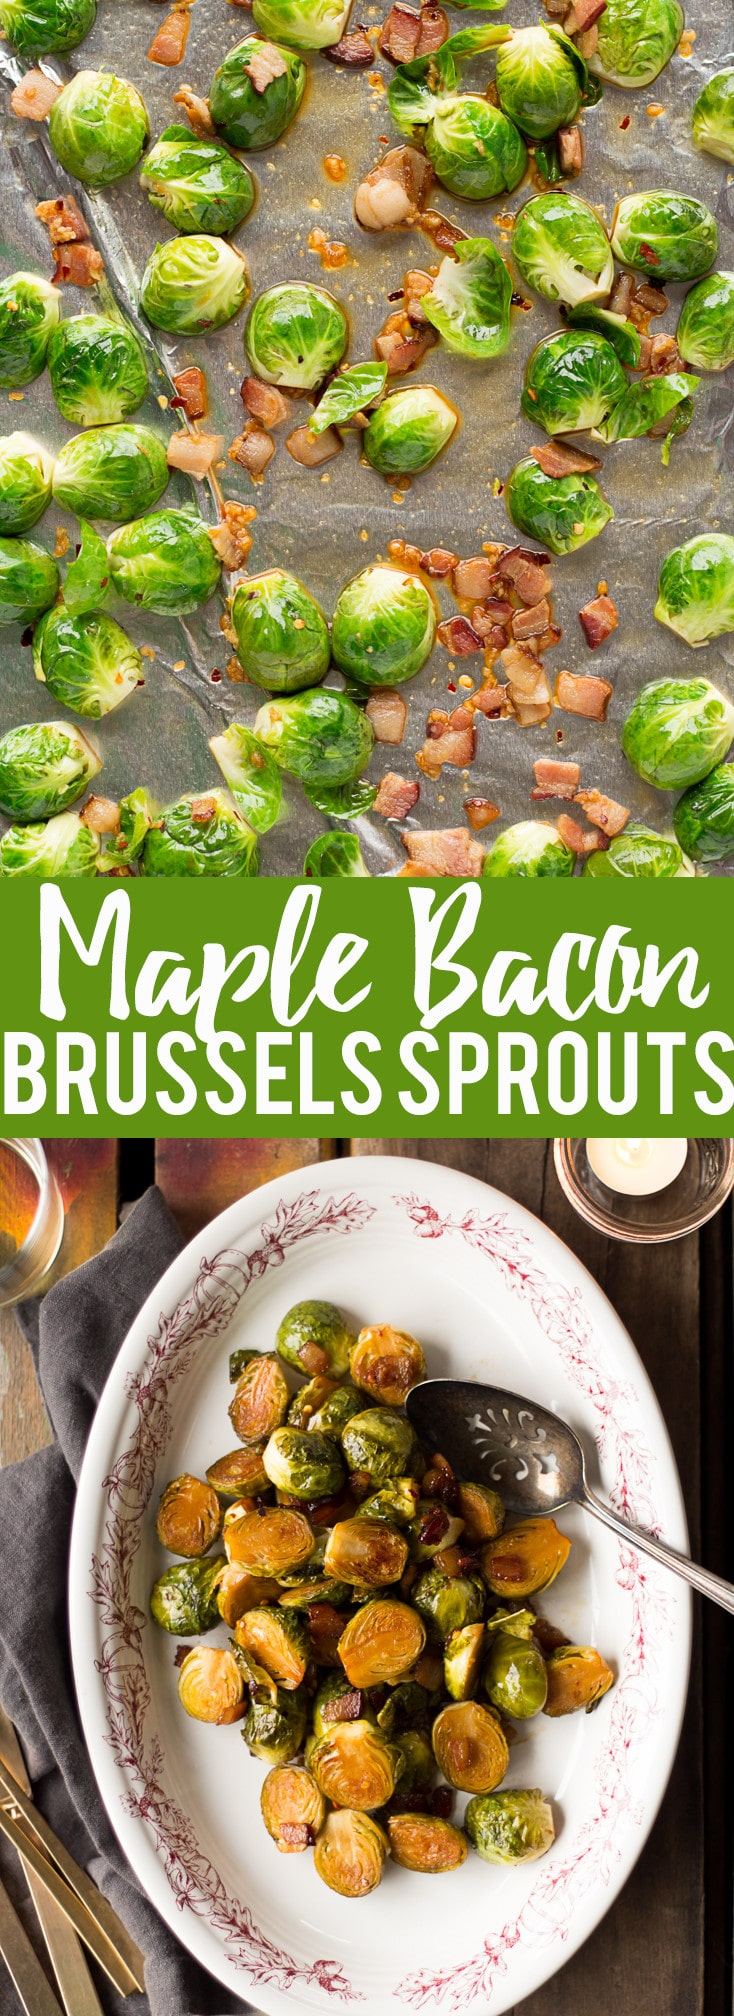 These Maple Bacon Roasted Brussels Sprouts are sweet, smoky, and spicy. They are the perfect winter or holiday side dish!